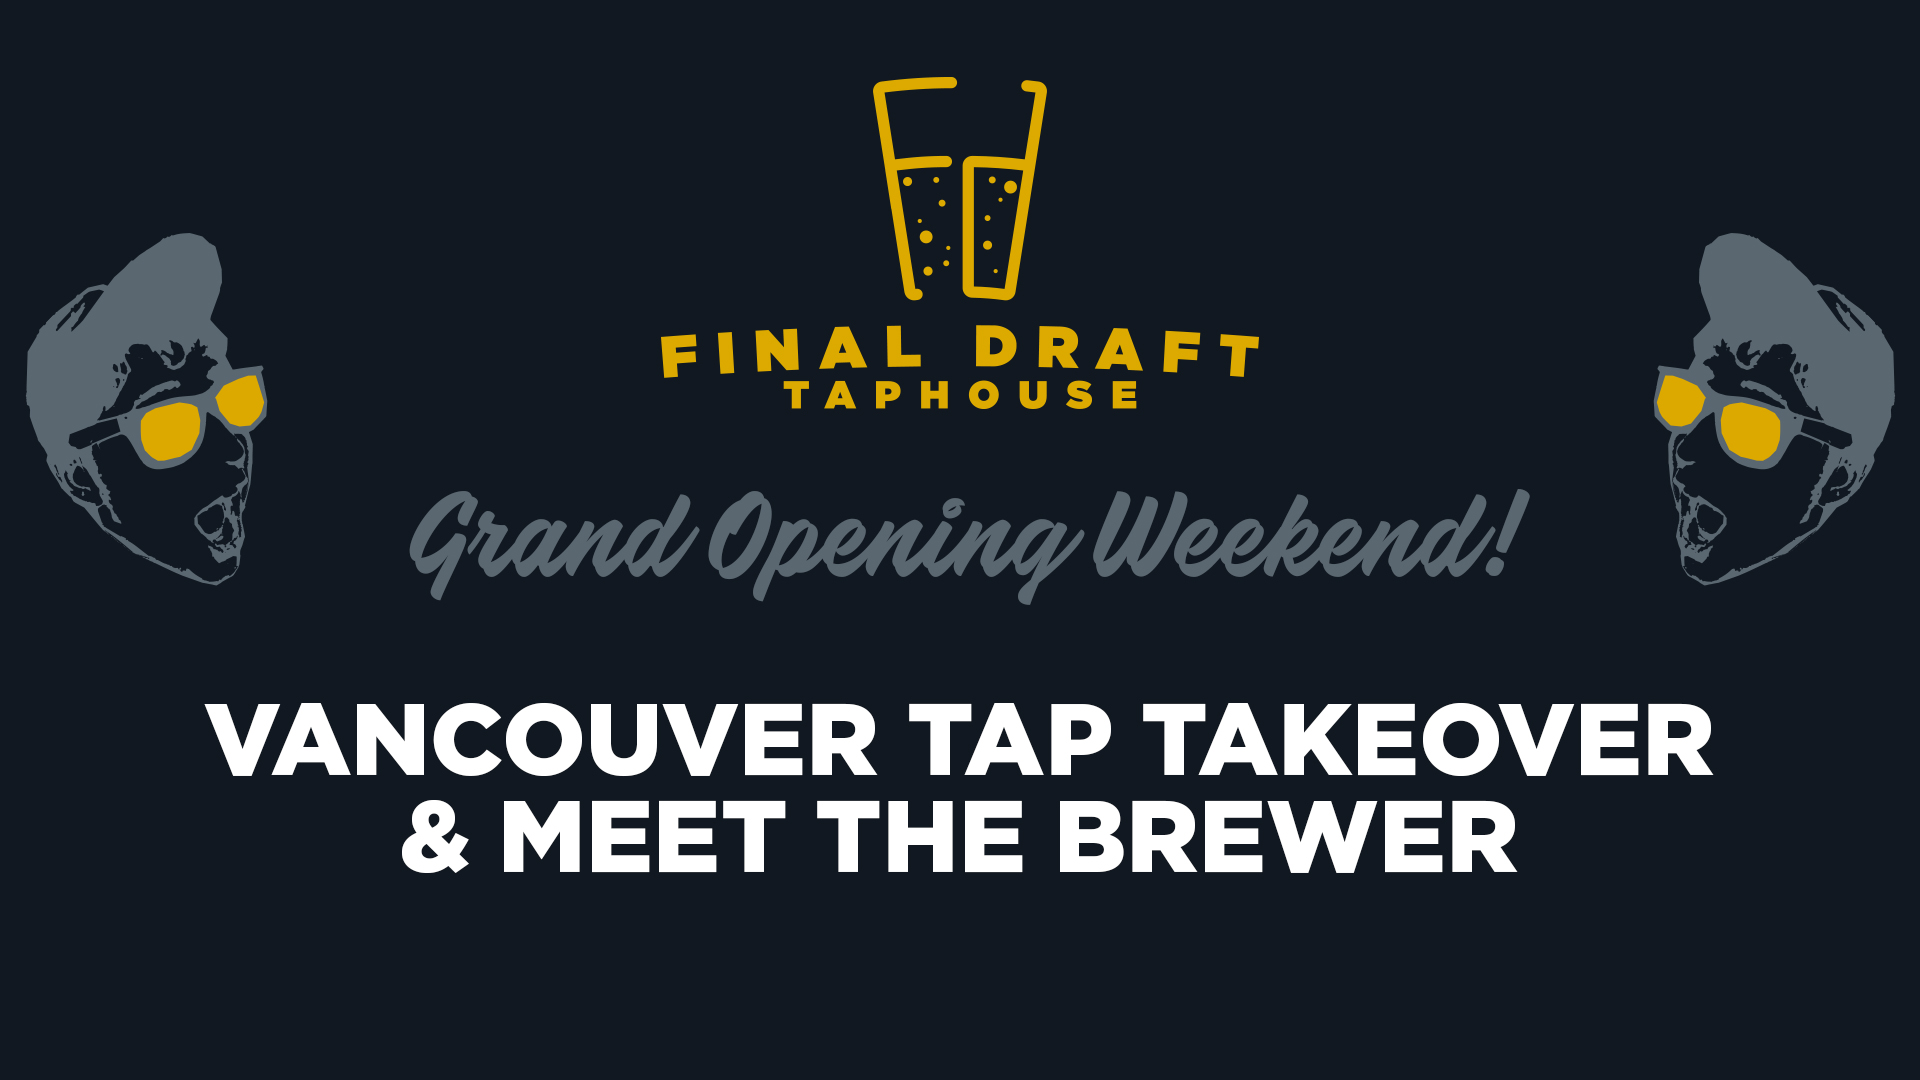 Friday, August 4 from 5 to 7 p.m. - 11 Vancouver breweries will be on tap and the brewers will be at the taphouse meeting and greeting and giving away fun swag!